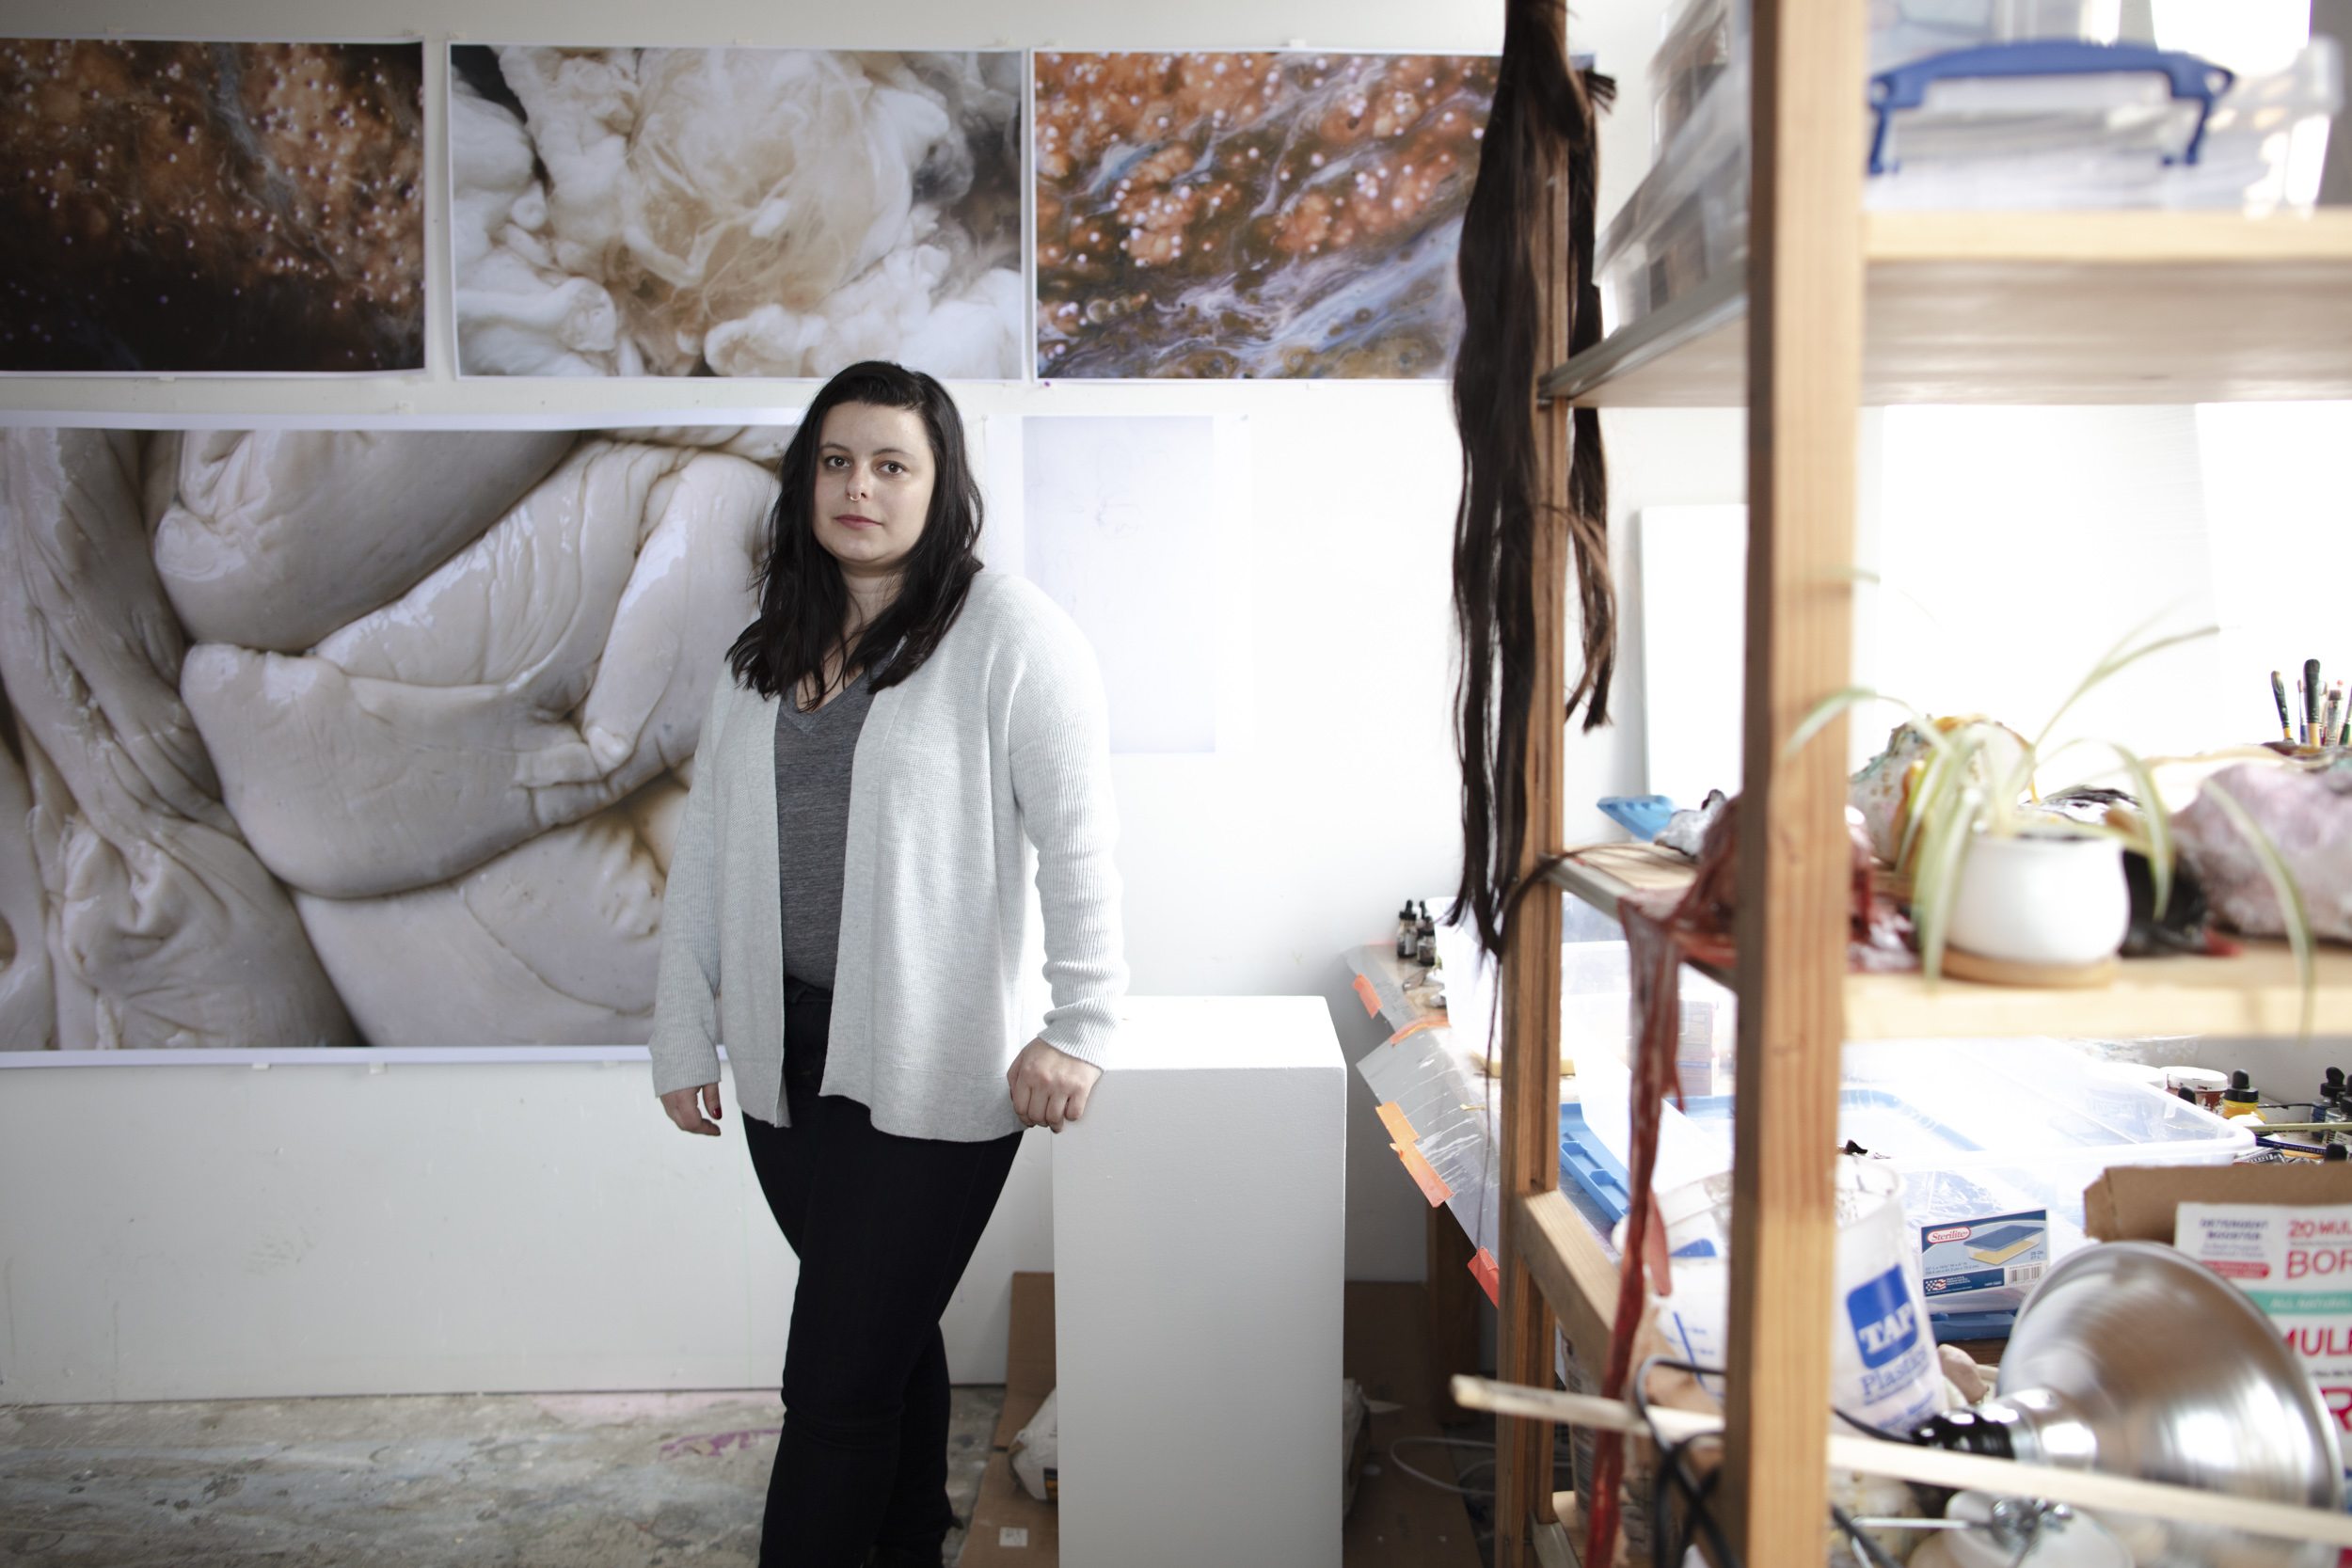 Graduate student Samantha Ollstein standing in her studio surrounded by her artwork